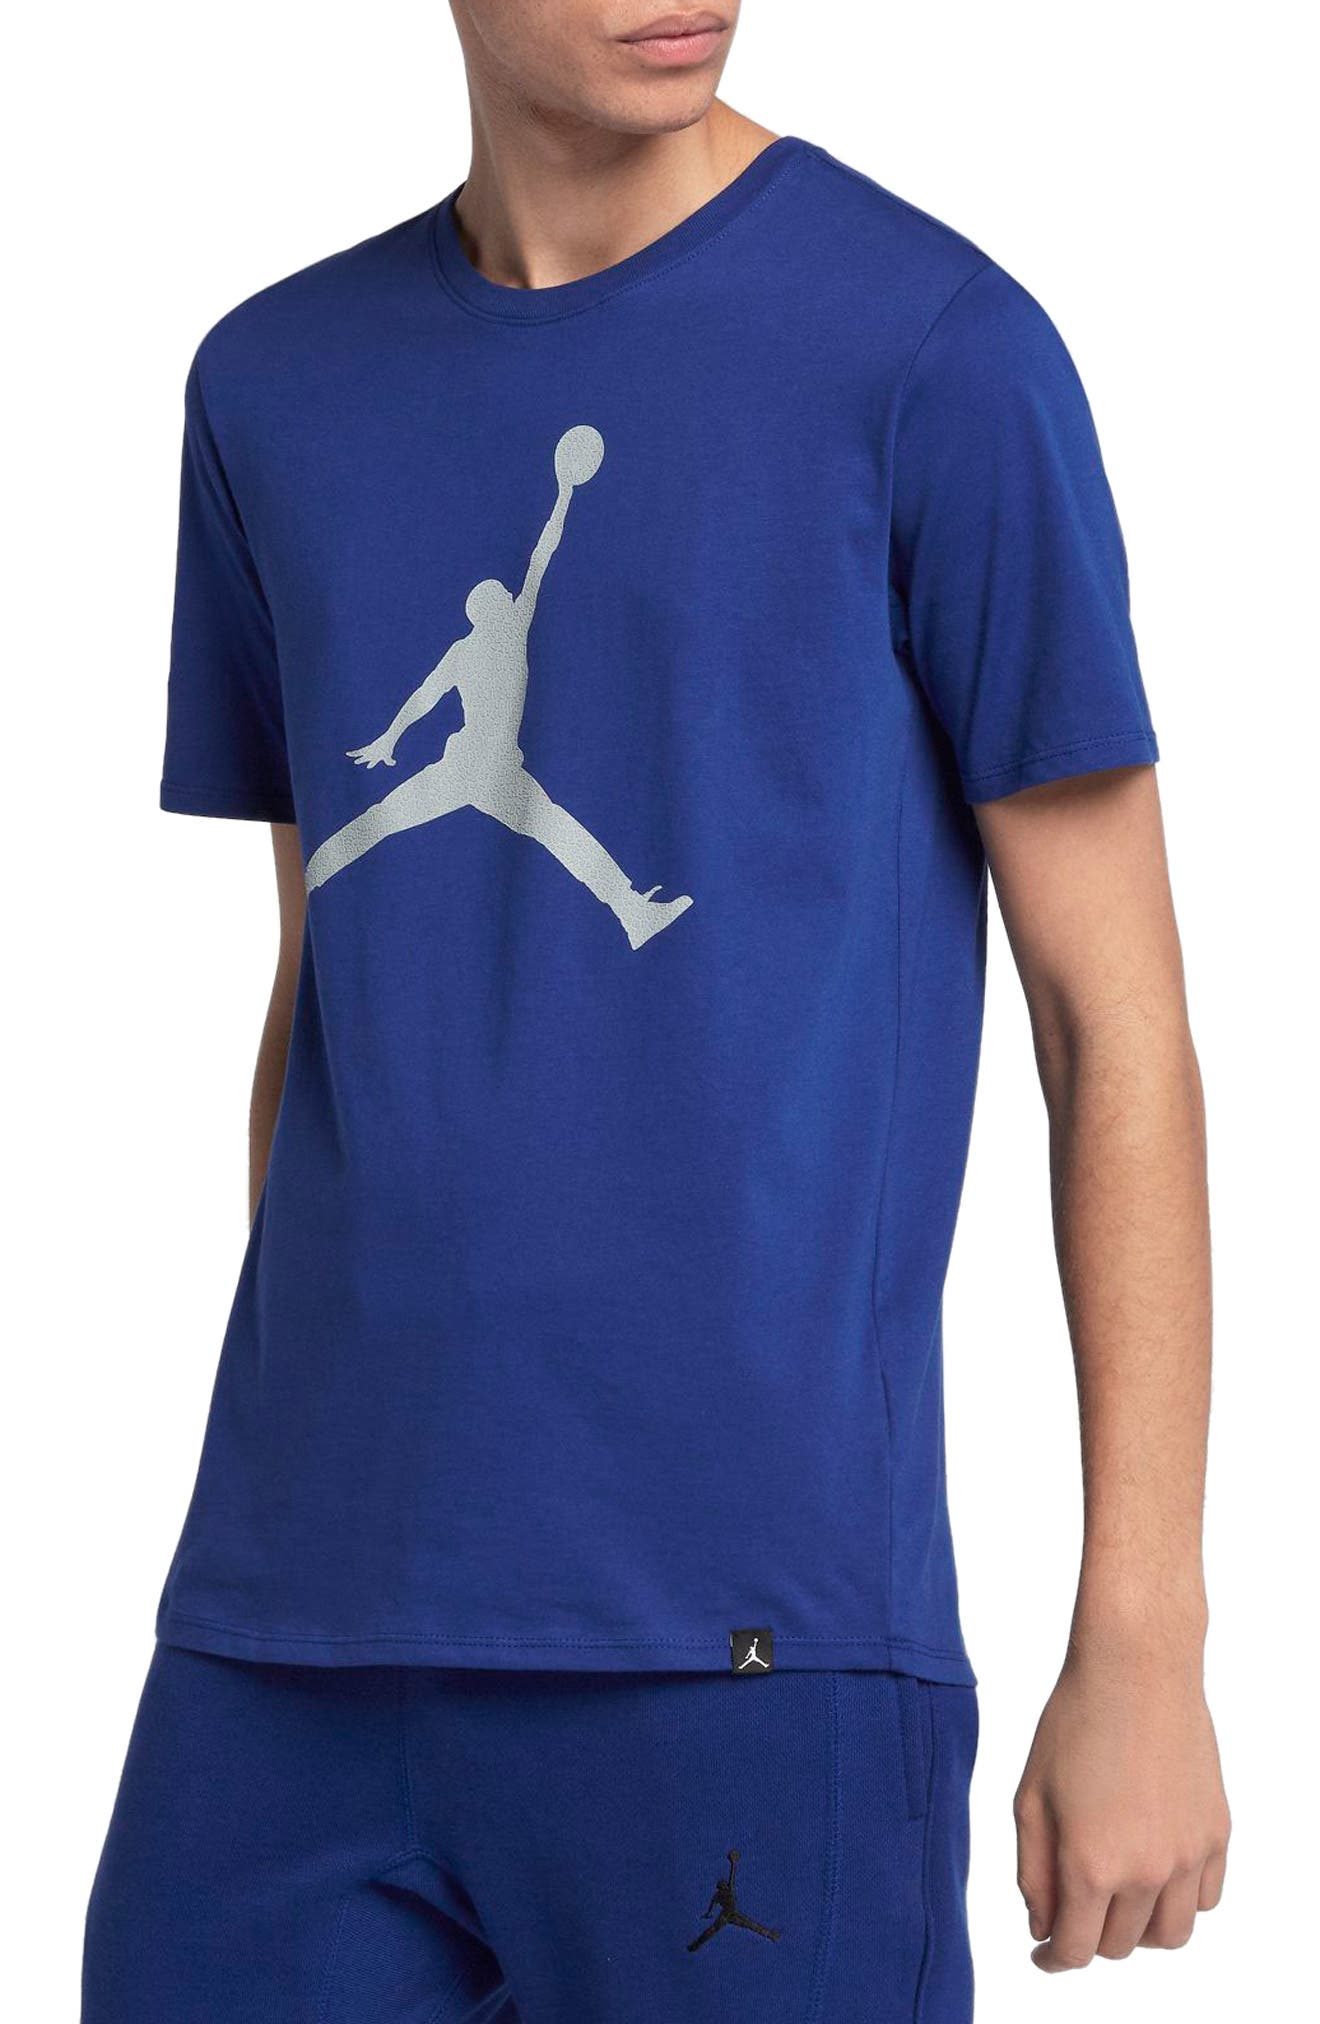 Sportswear Iconic Jumpman T-Shirt,                         Main,                         color, Deep Royal Blue/ Wolf Grey